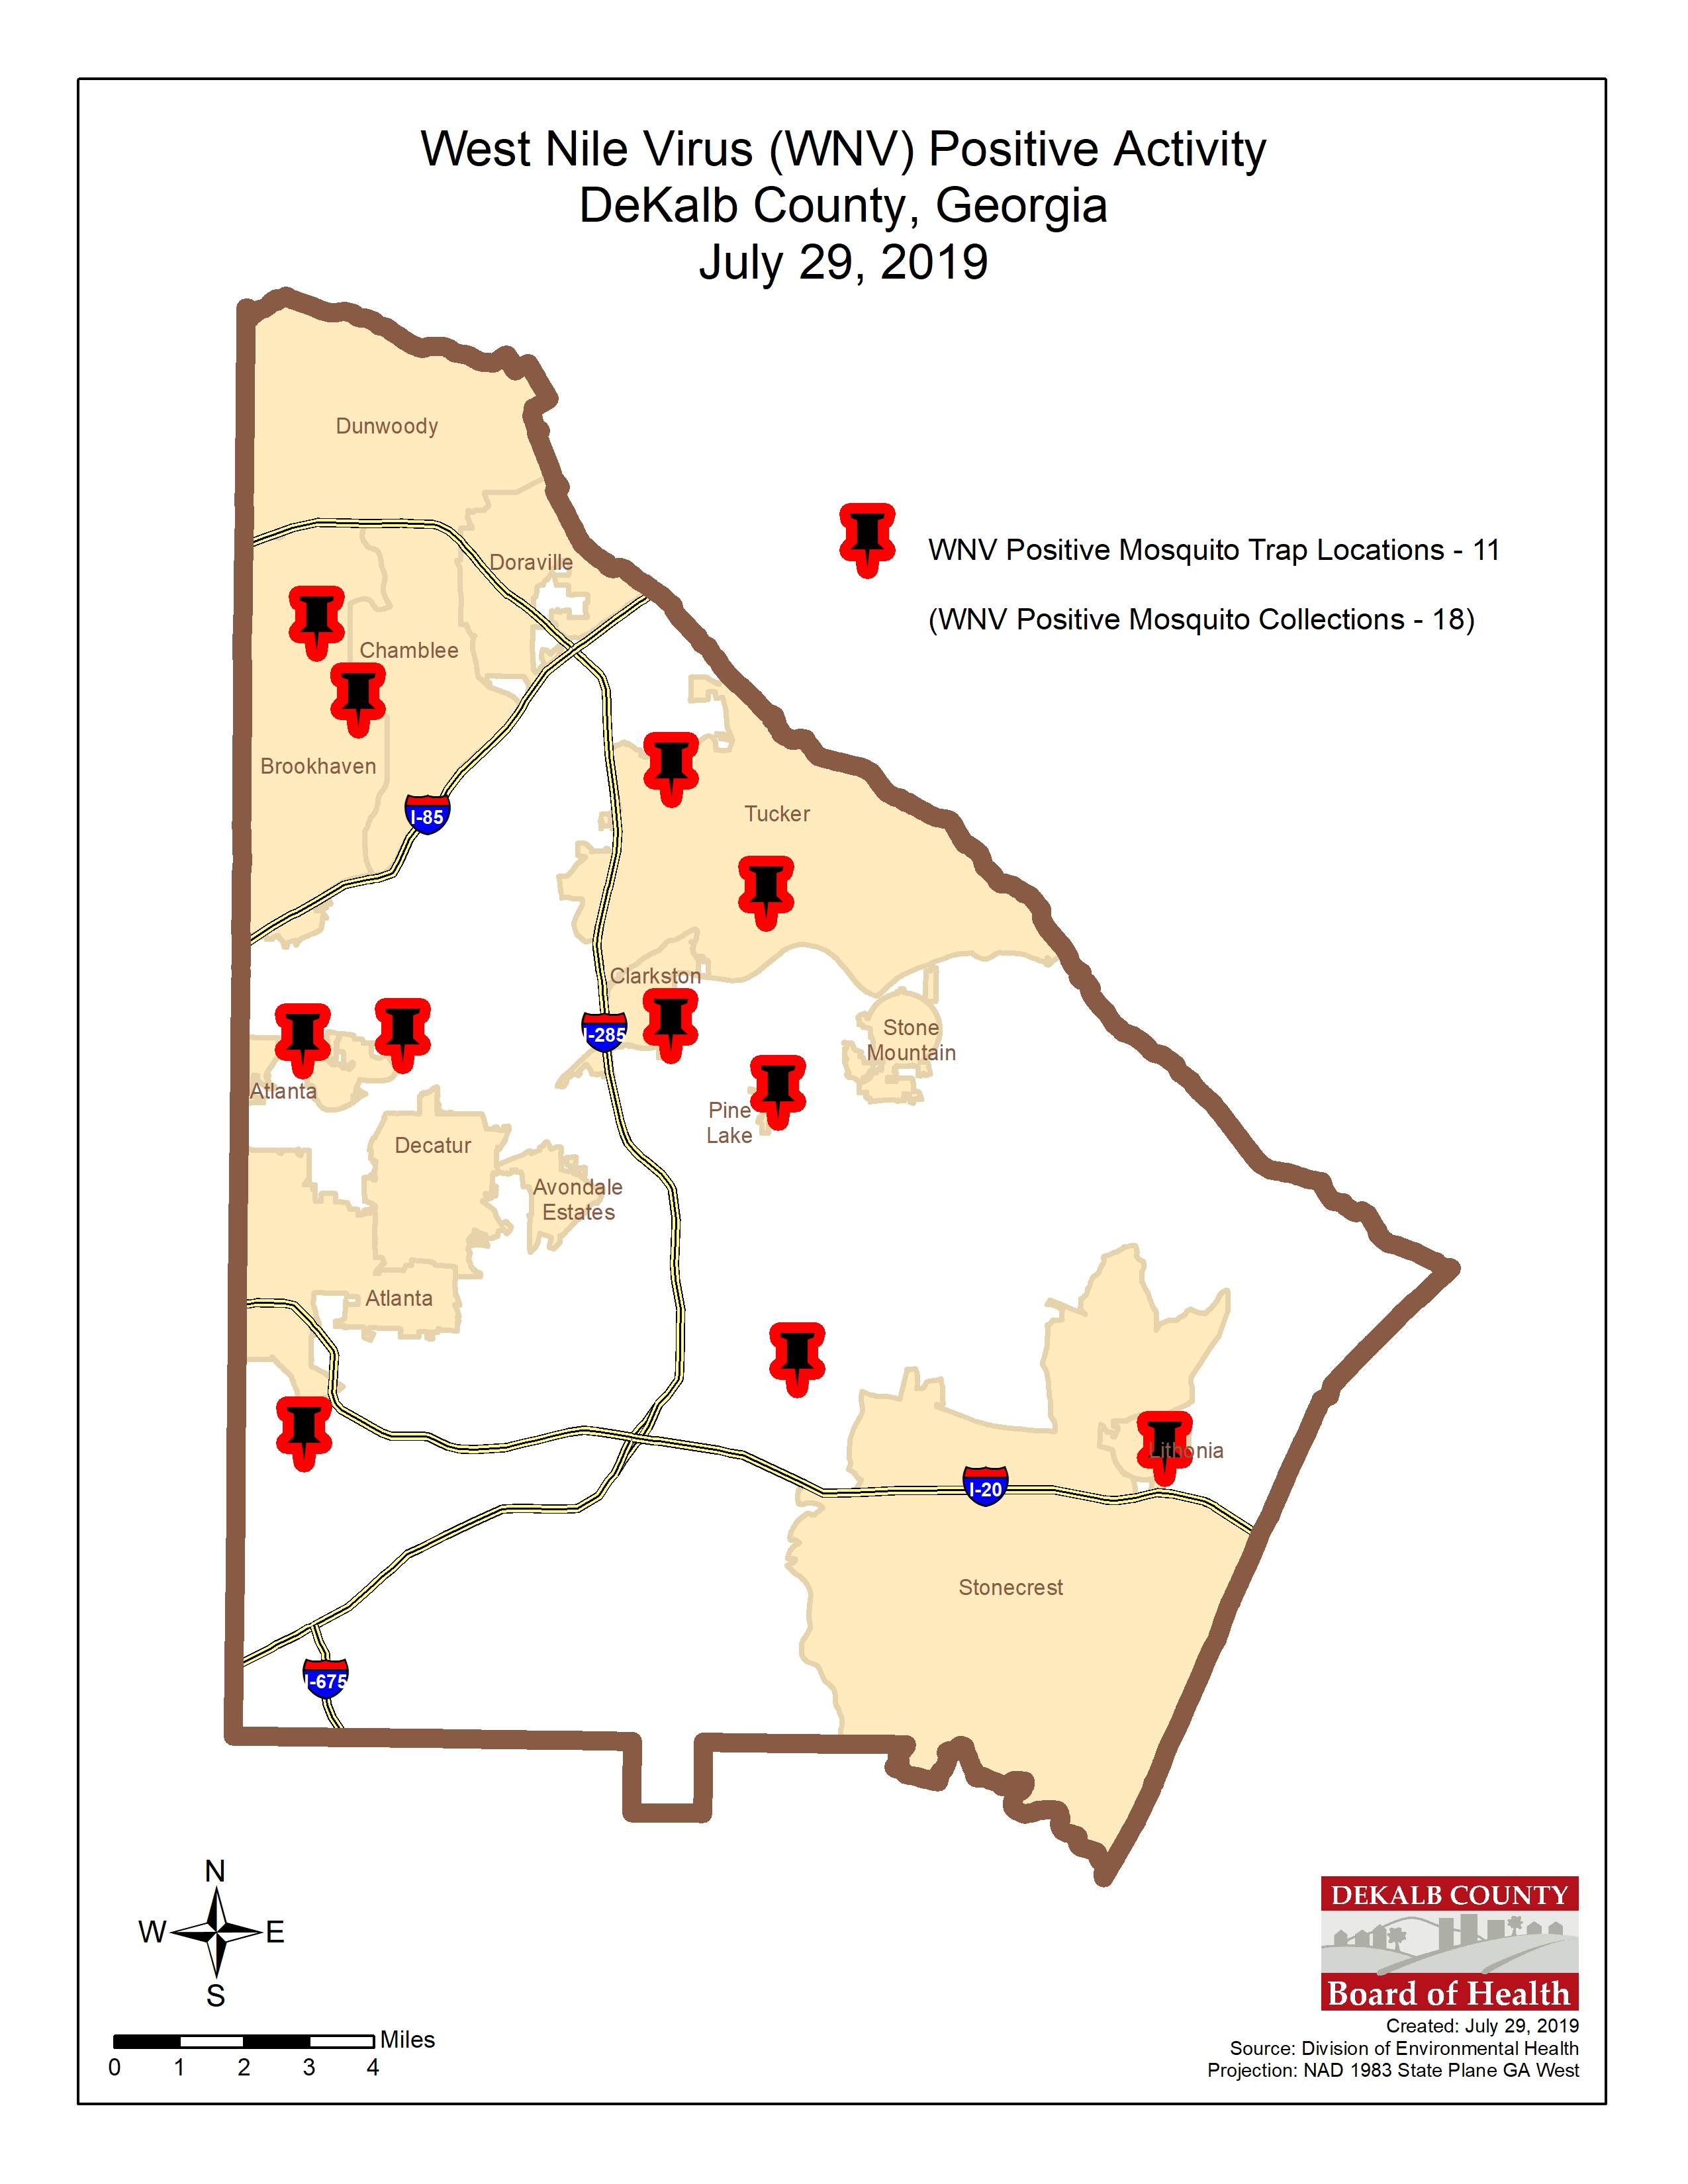 Mosquitoes in 11 areas in DeKalb County test positive for ... on echols county map, gwinnett county map, bolingbrook county map, cook county map, dooly county map, orange county county map, letcher county map, atlanta map, riley county ks map, dekalb al, burbank county map, lanier county map, chariton county map, daviess county map, cobb county map, long county map, piatt county map, fulton county map, nodaway county map, georgia map,